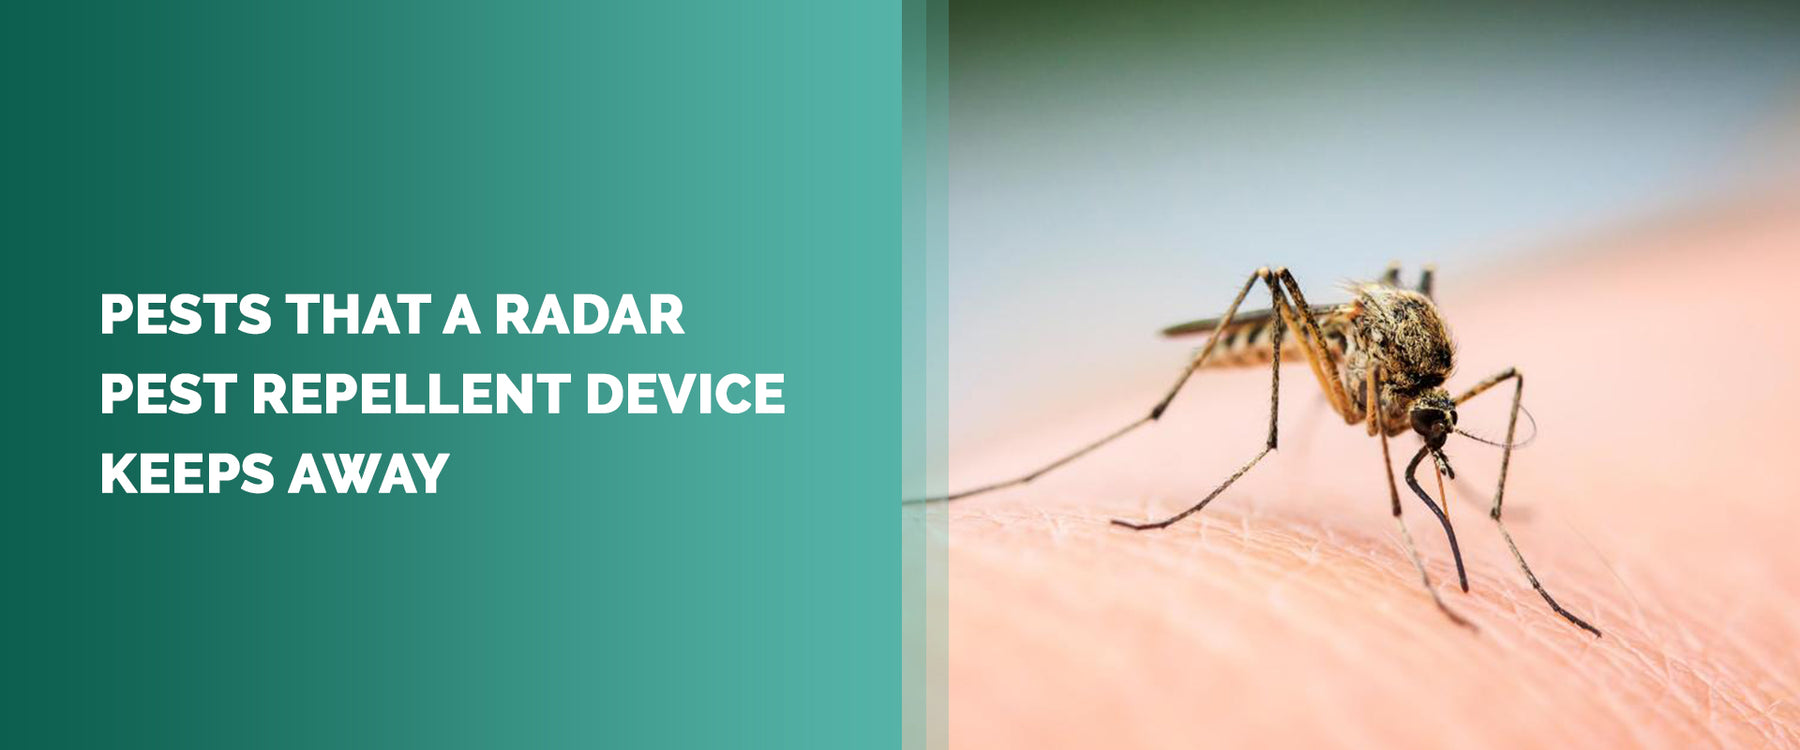 Pests That A Radar Pest Repellent Device Keeps Away